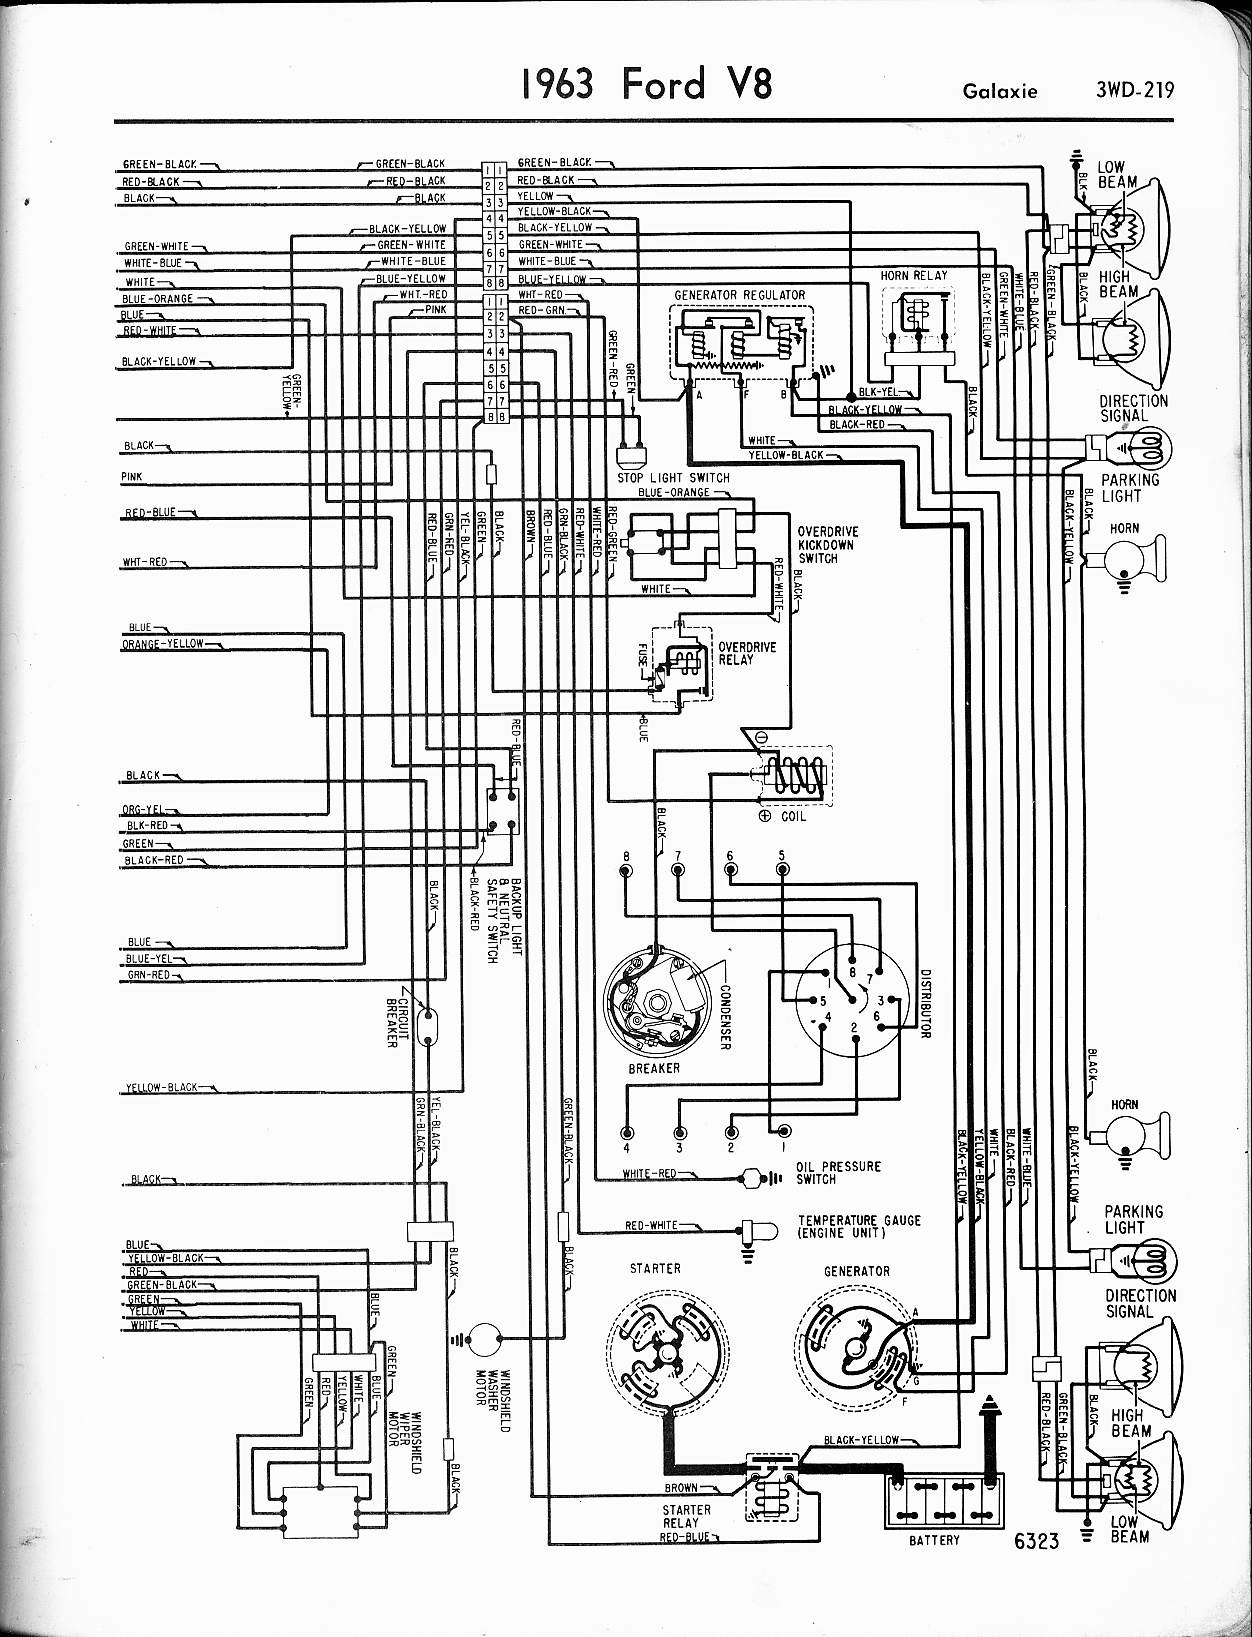 65 Mustang Headlight Wiring Diagram Simonand 100 2001 Ford 1965 further Trl together with Aircond also Automotive Wiring Repair Car Diagrams App Reading Harness Connectors Auto Electrical Diagram For Wire Cars as well 10. on 1962 ford thunderbird wiring diagram